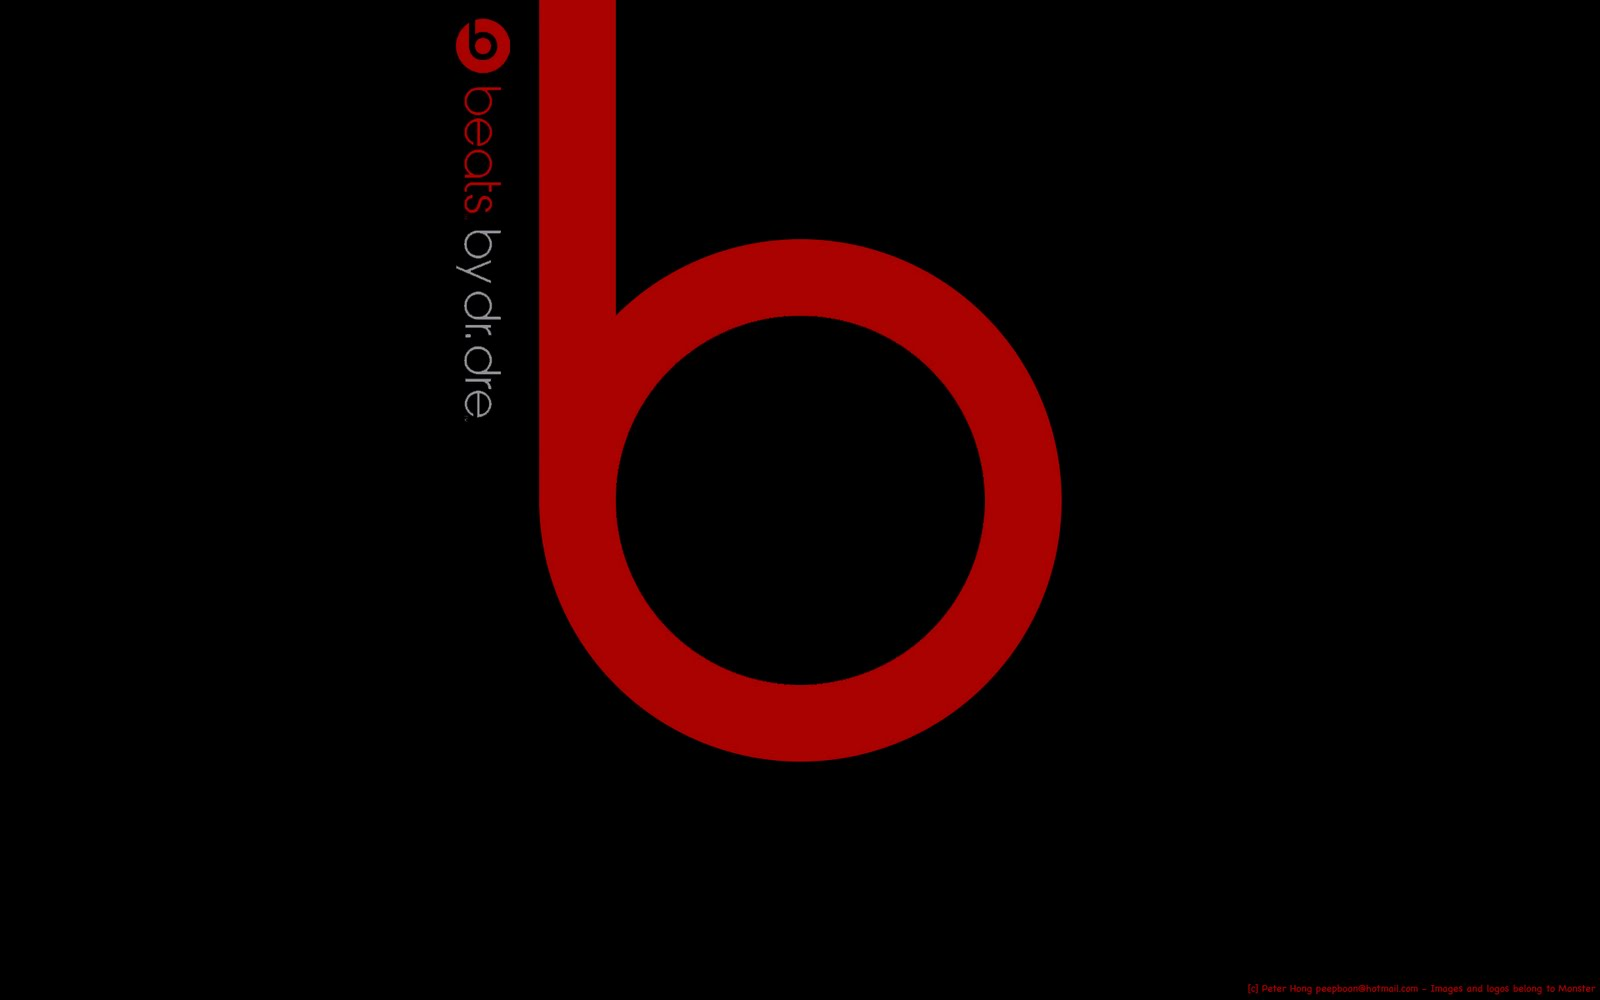 beats by dre wallpaper 1080p wallpapersafari